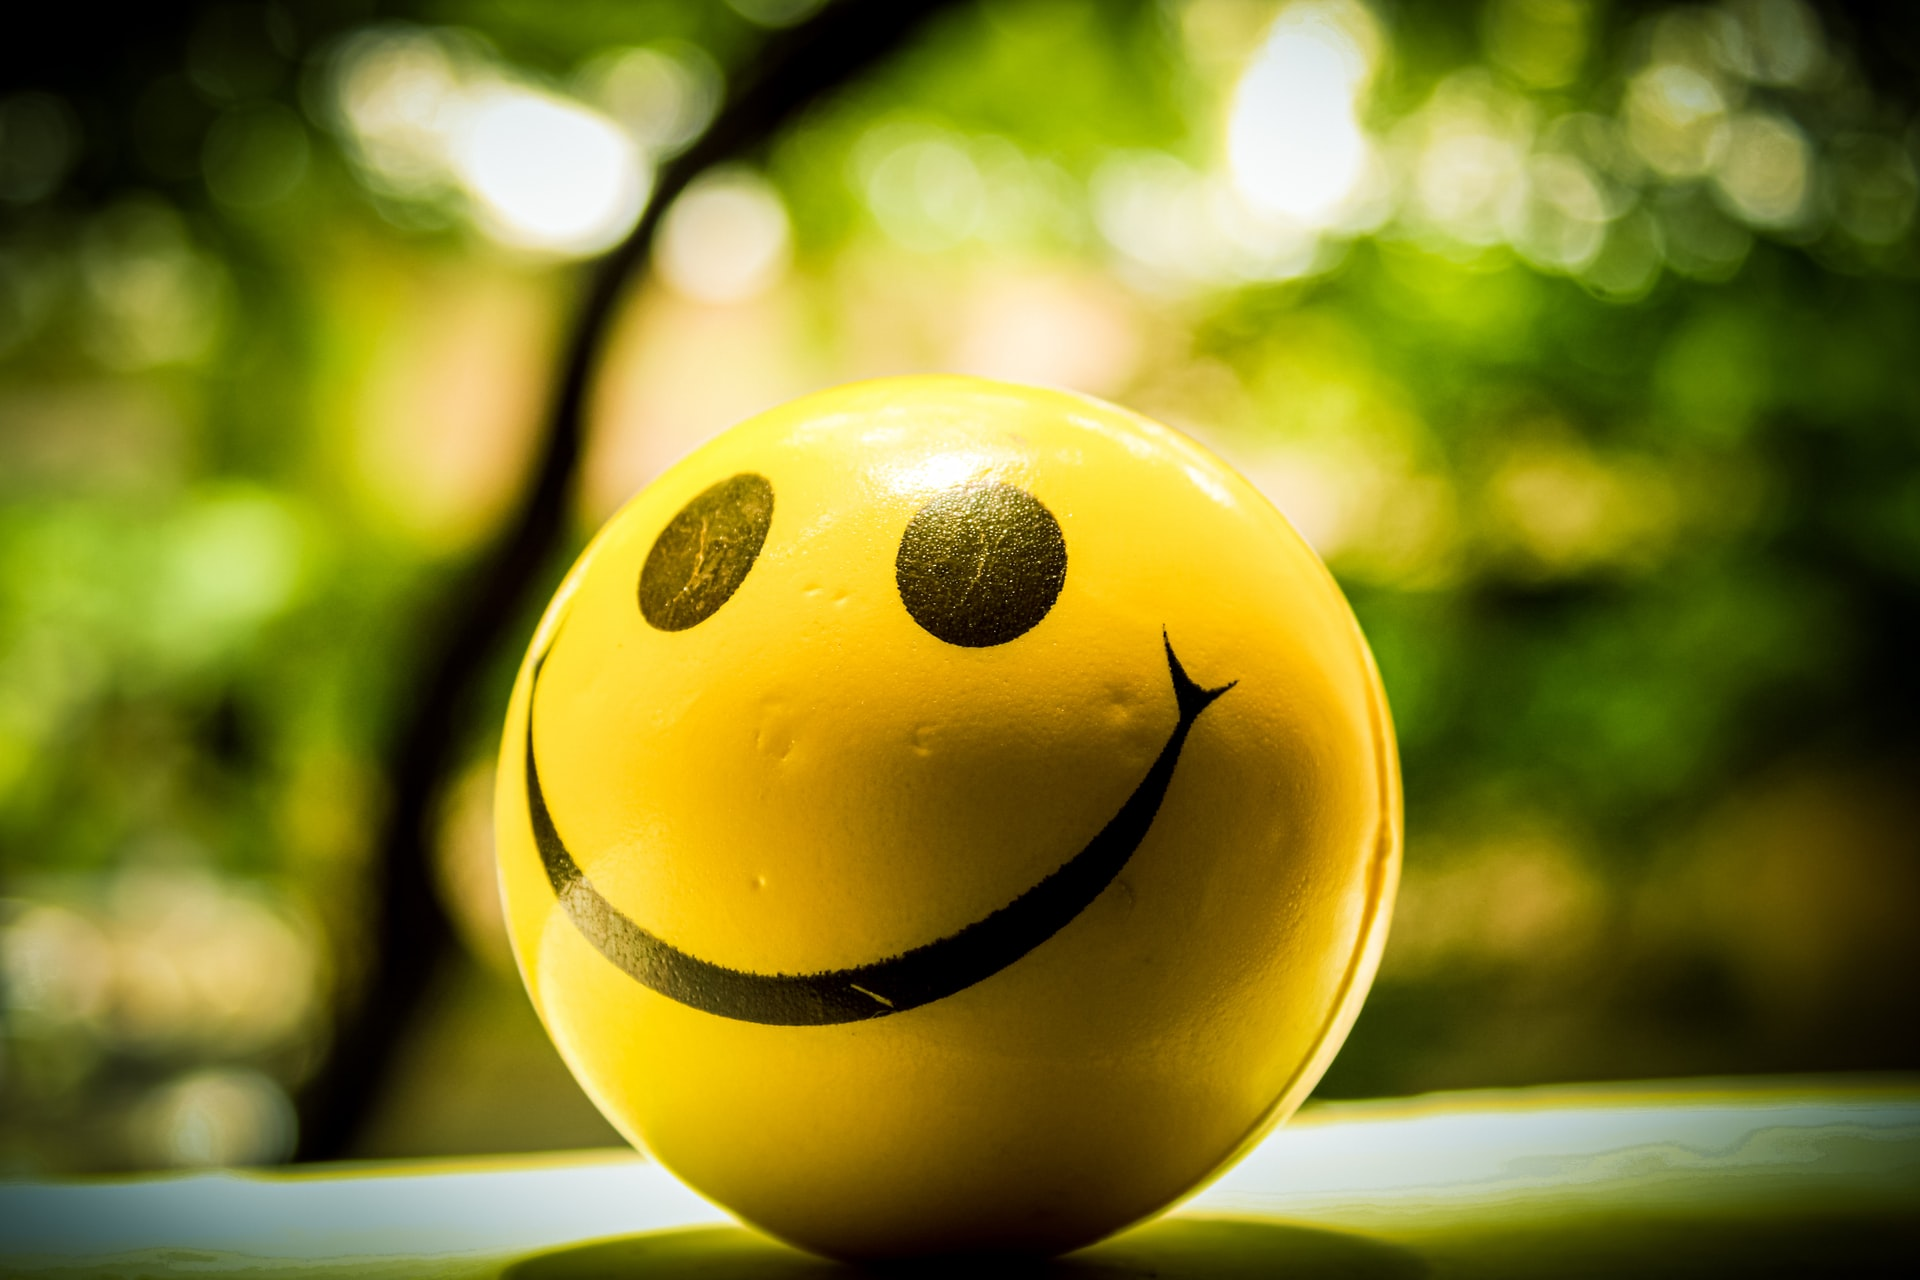 A shallow-focus image of a yellow ball with a smiley face on it sitting on the ground outside in front of some trees